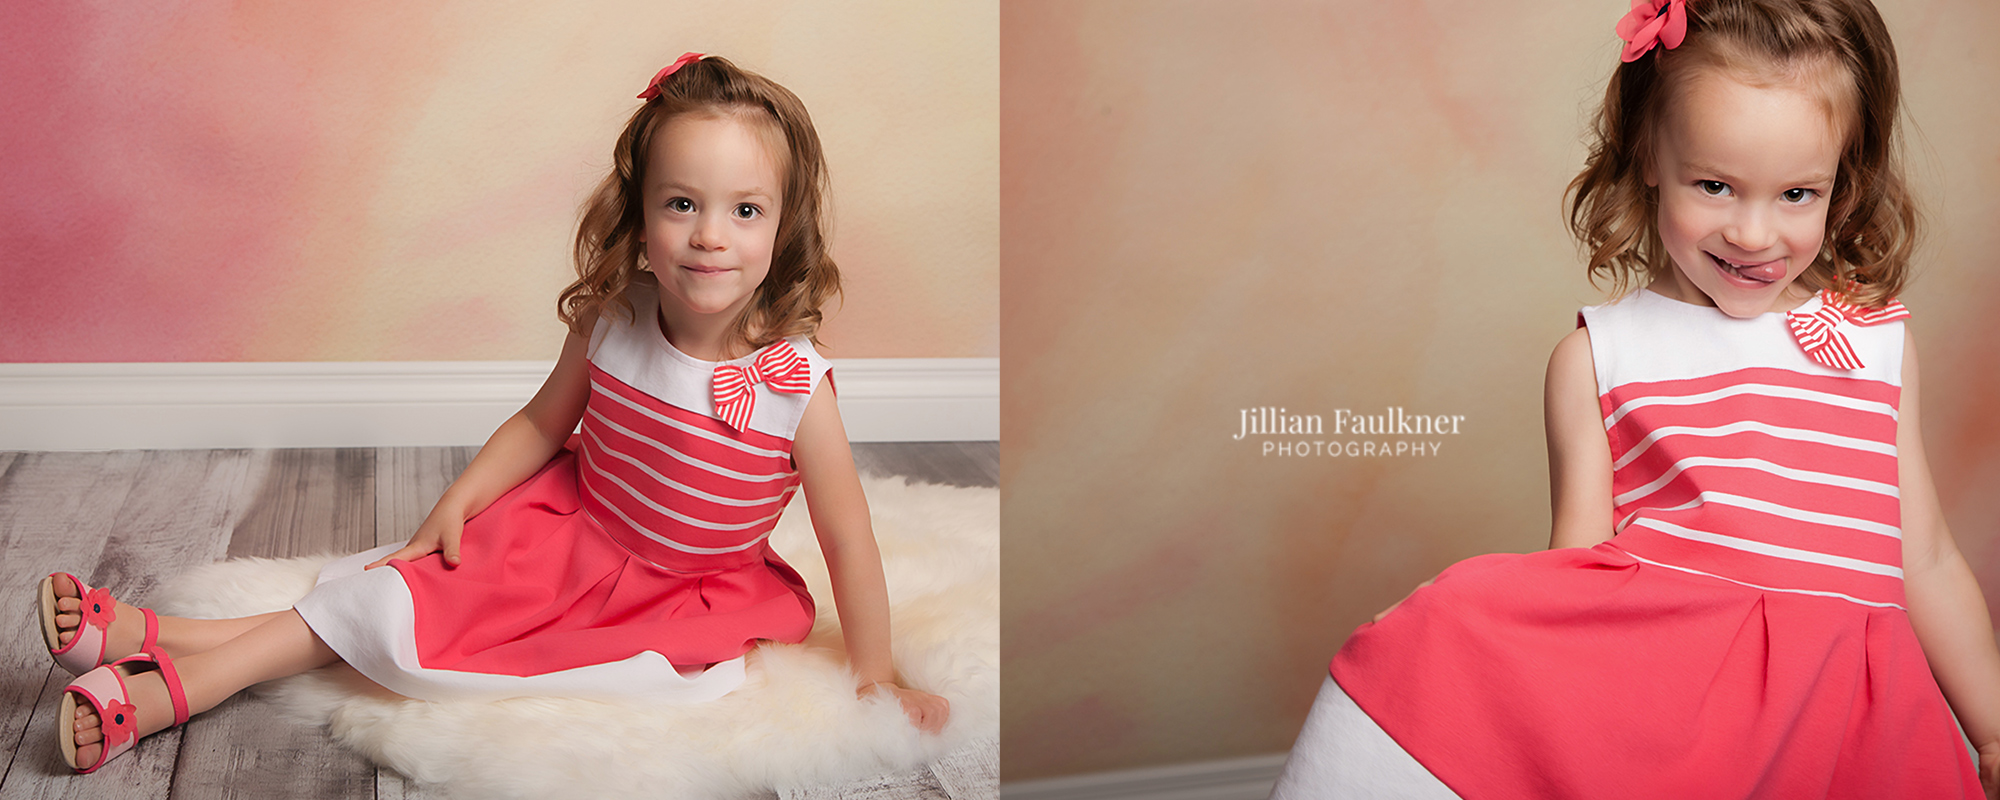 Child Photographer, Jillian Faulkner, offers numerous backdrop selections and photography props to all of her clients.